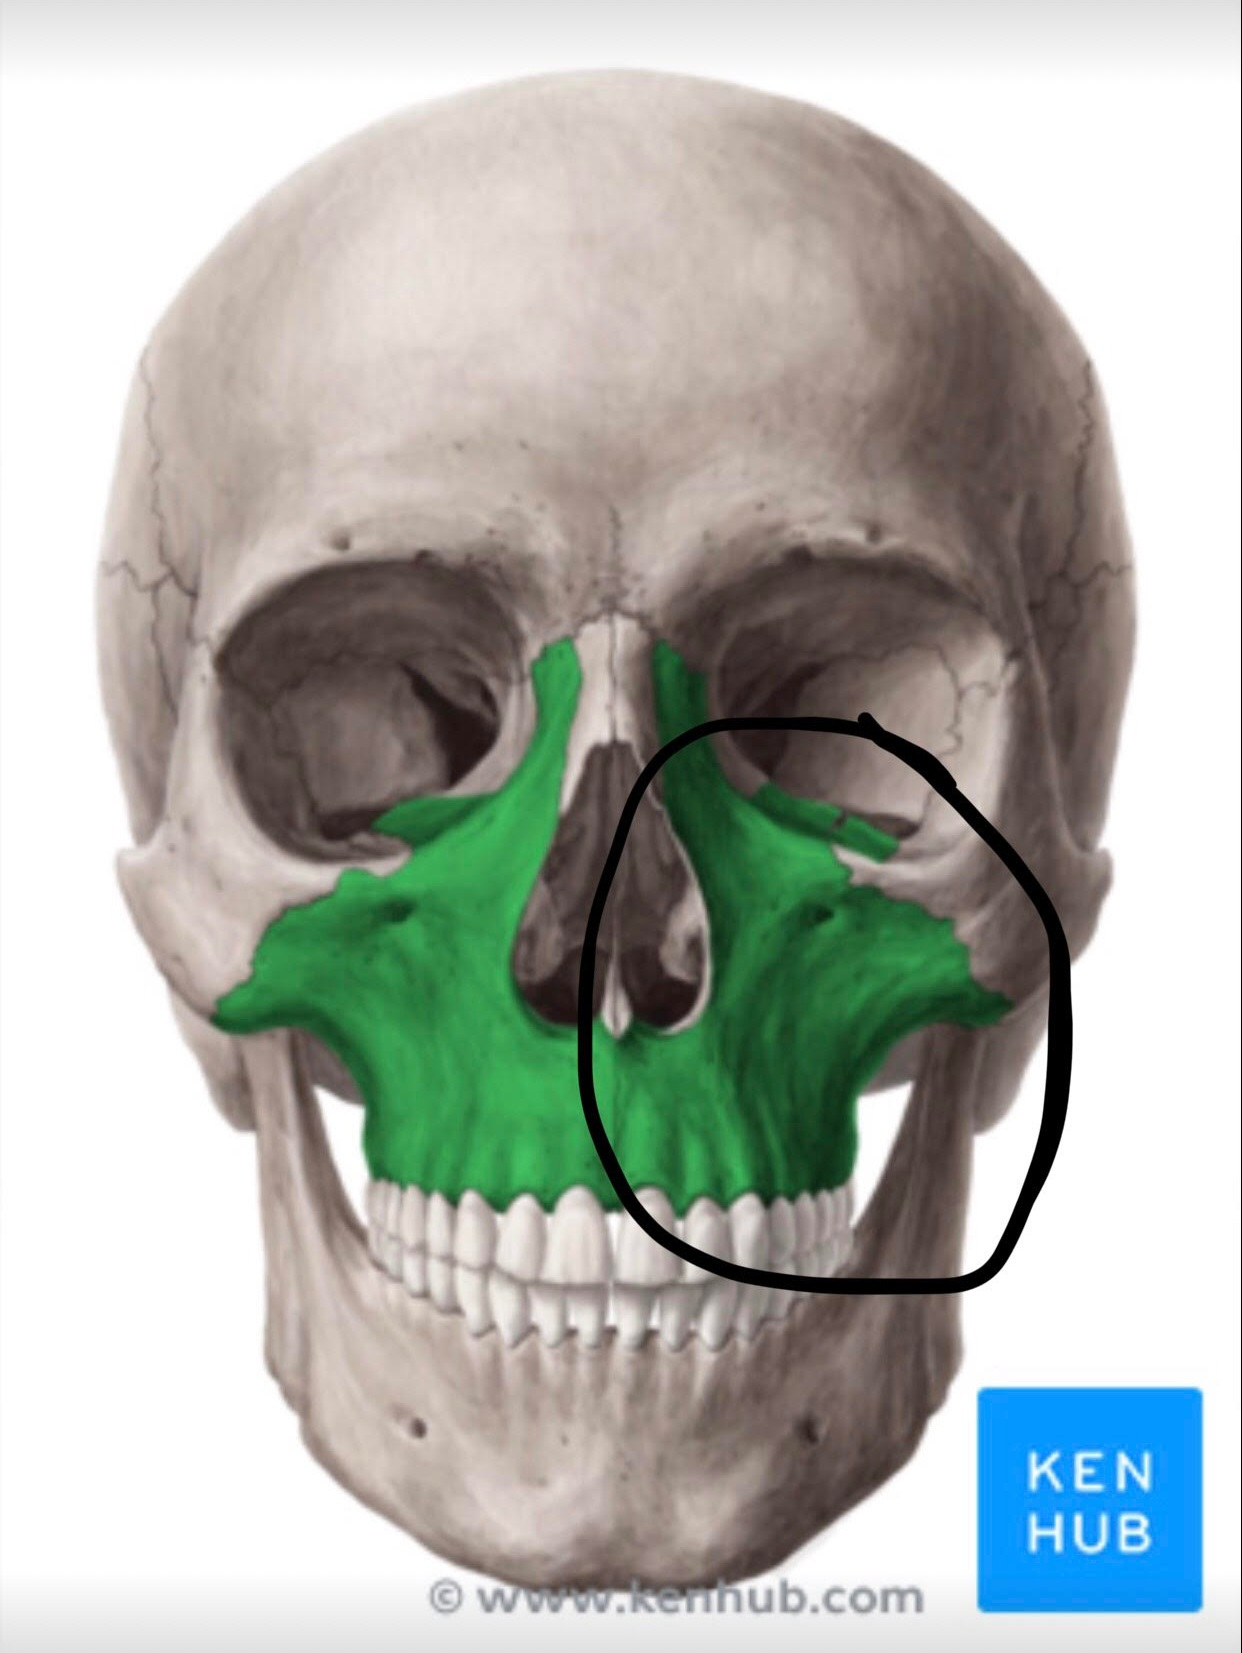 - Off we go. The hospital does a CT scan. I didn't break my nose, my eye socket is ok, but I definitely shattered my maxilla bone. That is the bone right beside your nose, mid-cheek area. See the attached photo of the skull, the maxilla bone is highlighted in green.